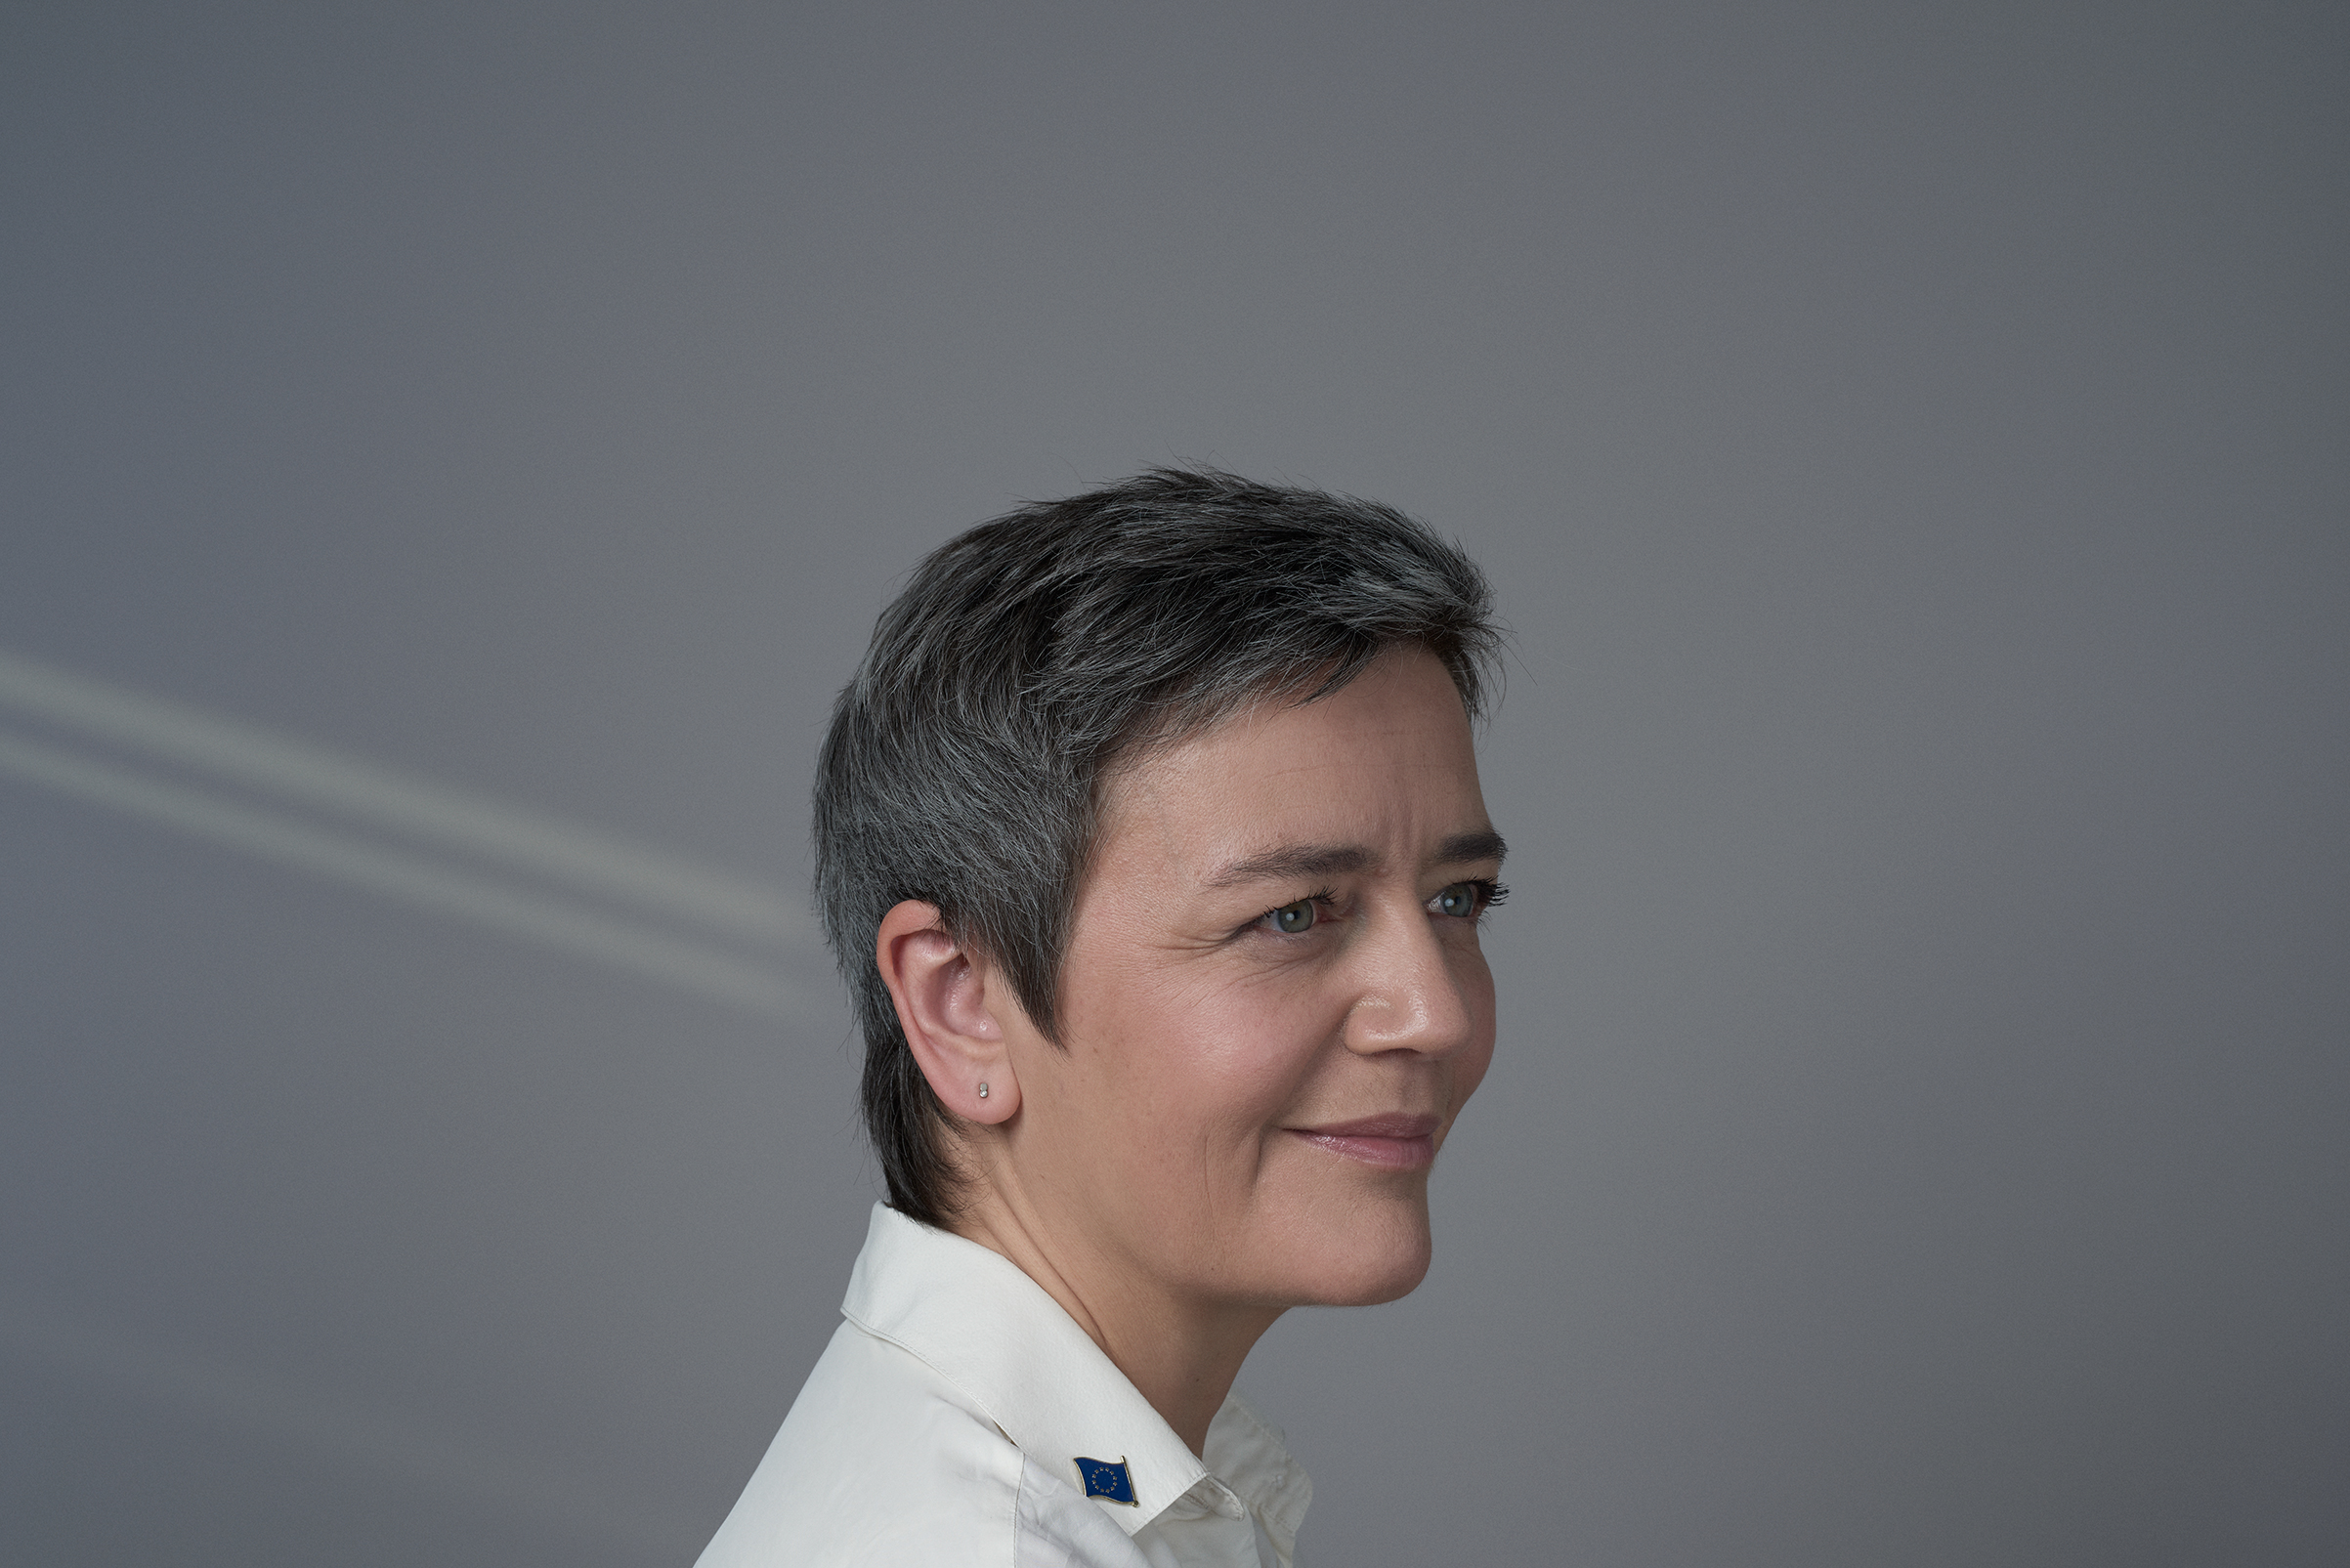 Margrethe Vestager became the European Commissioner for Competition in 2014